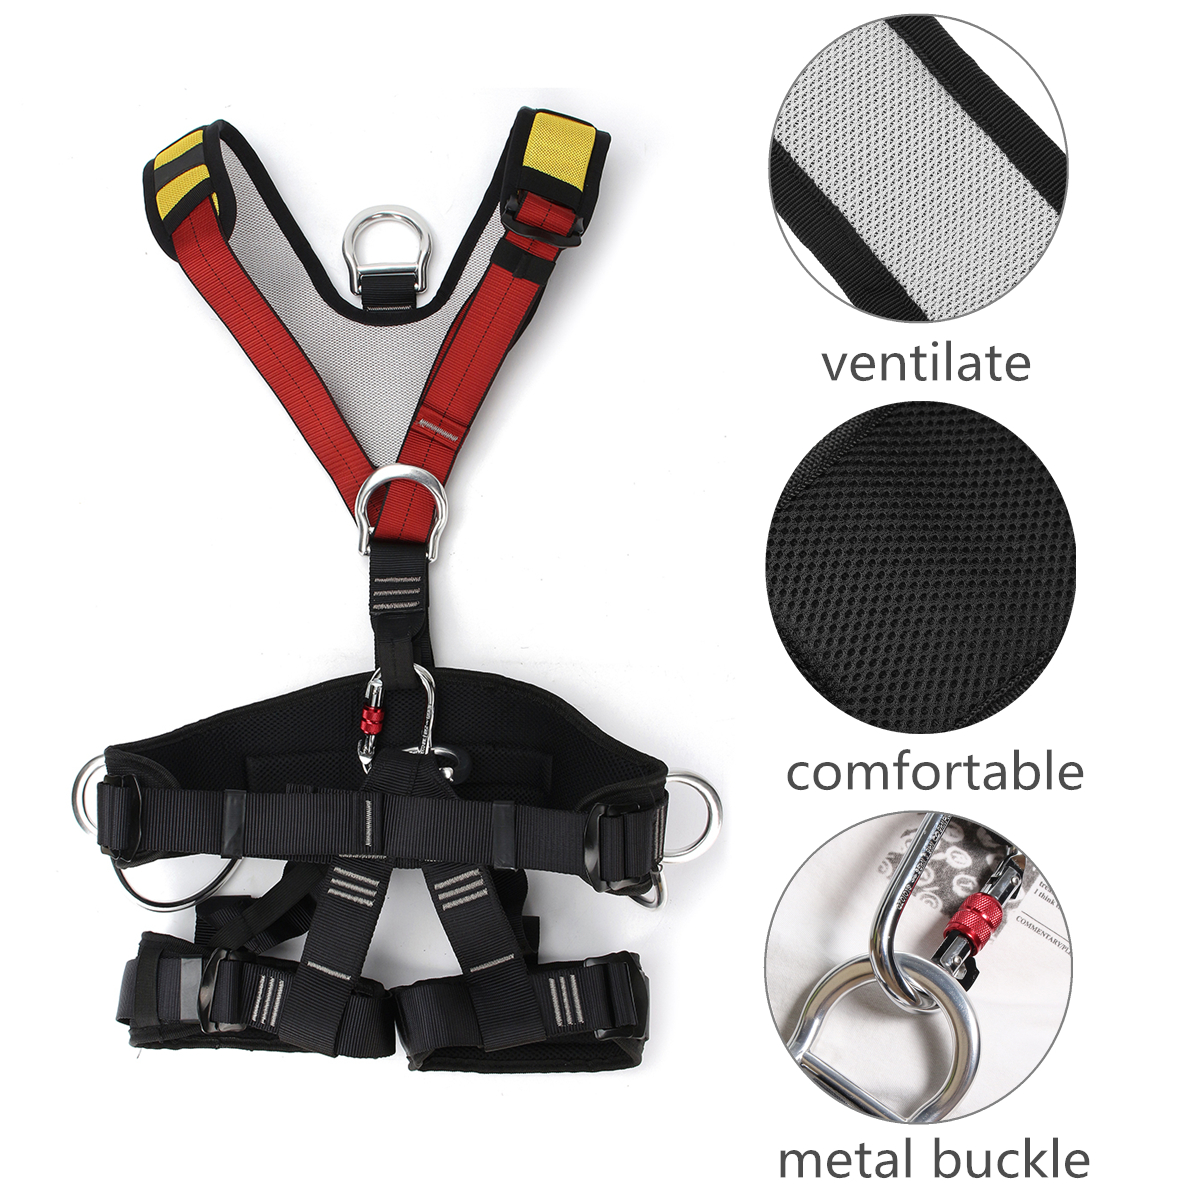 Quality Professional Harnesses Rock Climbing High altitude protection Full Body Safety Belt Anti Fall Protective Gear professional rock climbing harnesses full body safety belt anti fall removable gear altitude protection equipment